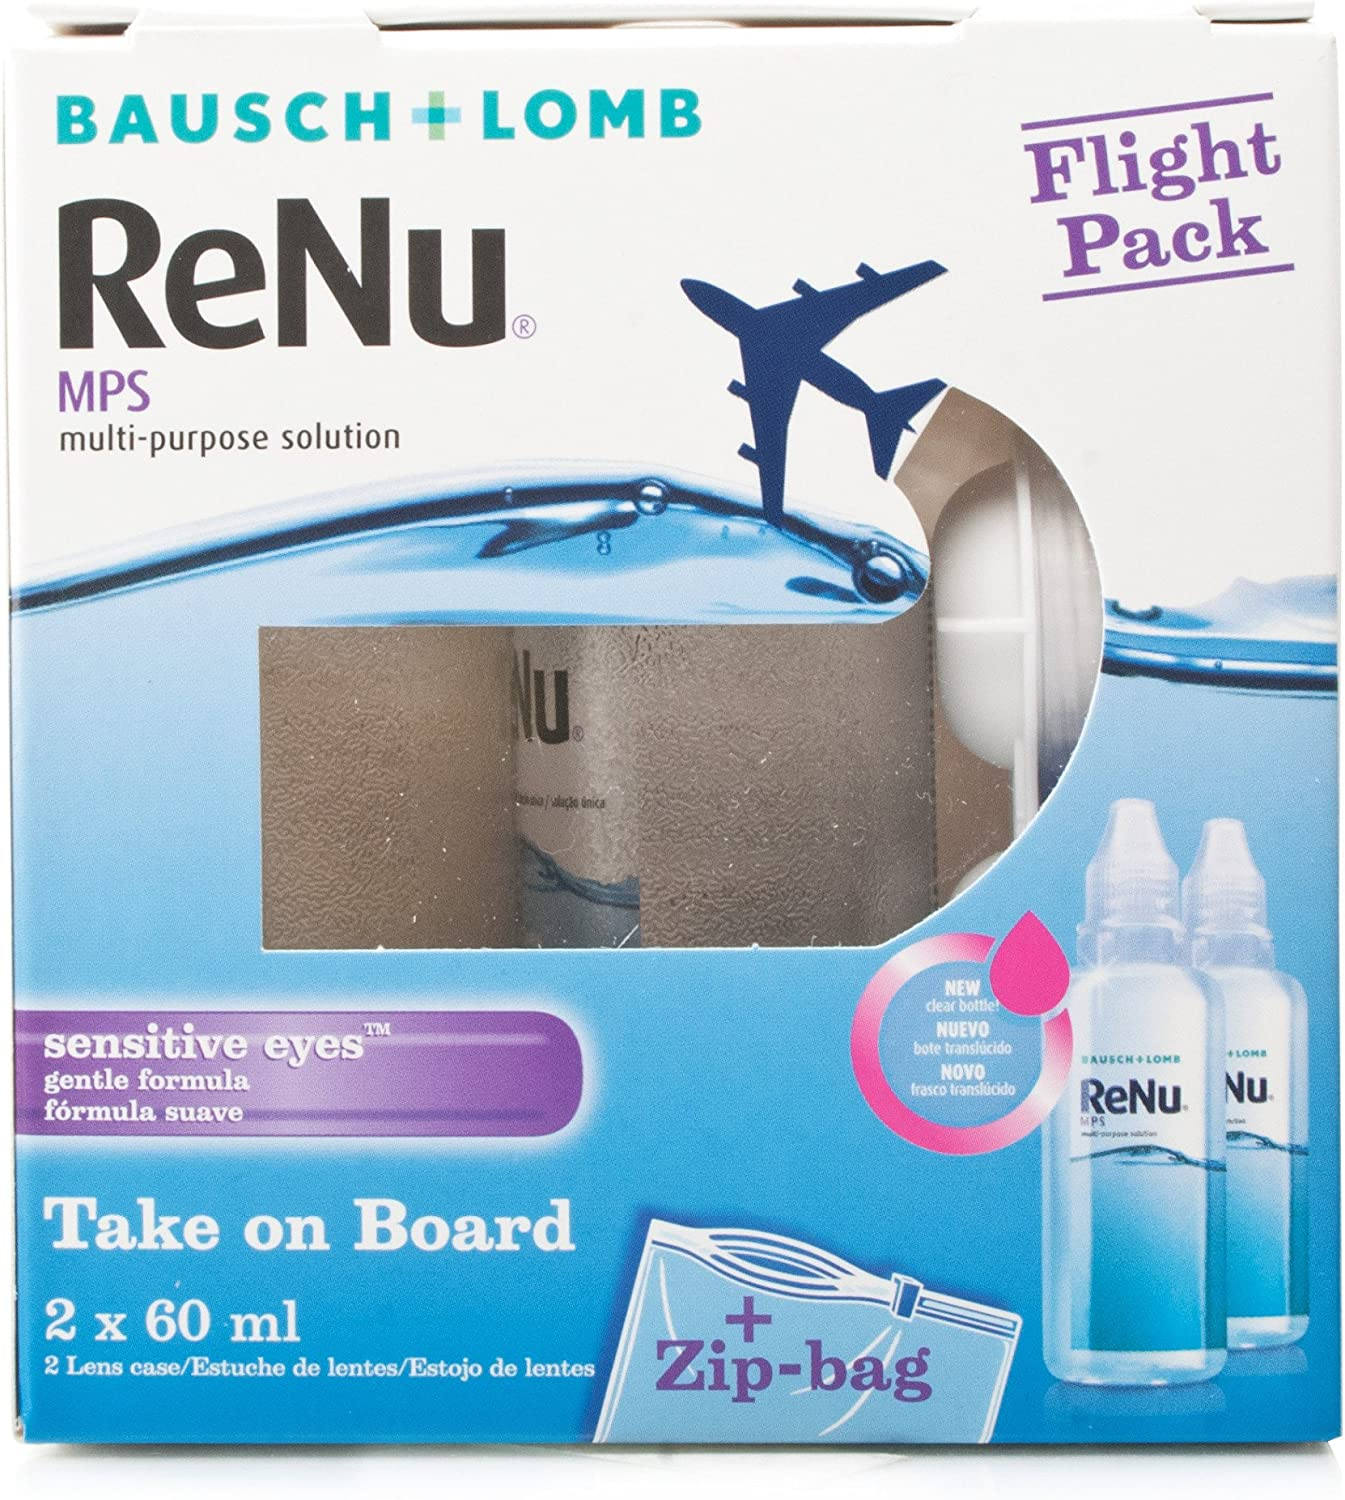 Bausch Lomb Renu Mps Multi Purpose Contact Lens Solution Flight Pack Amazon Co Uk Health Personal Care